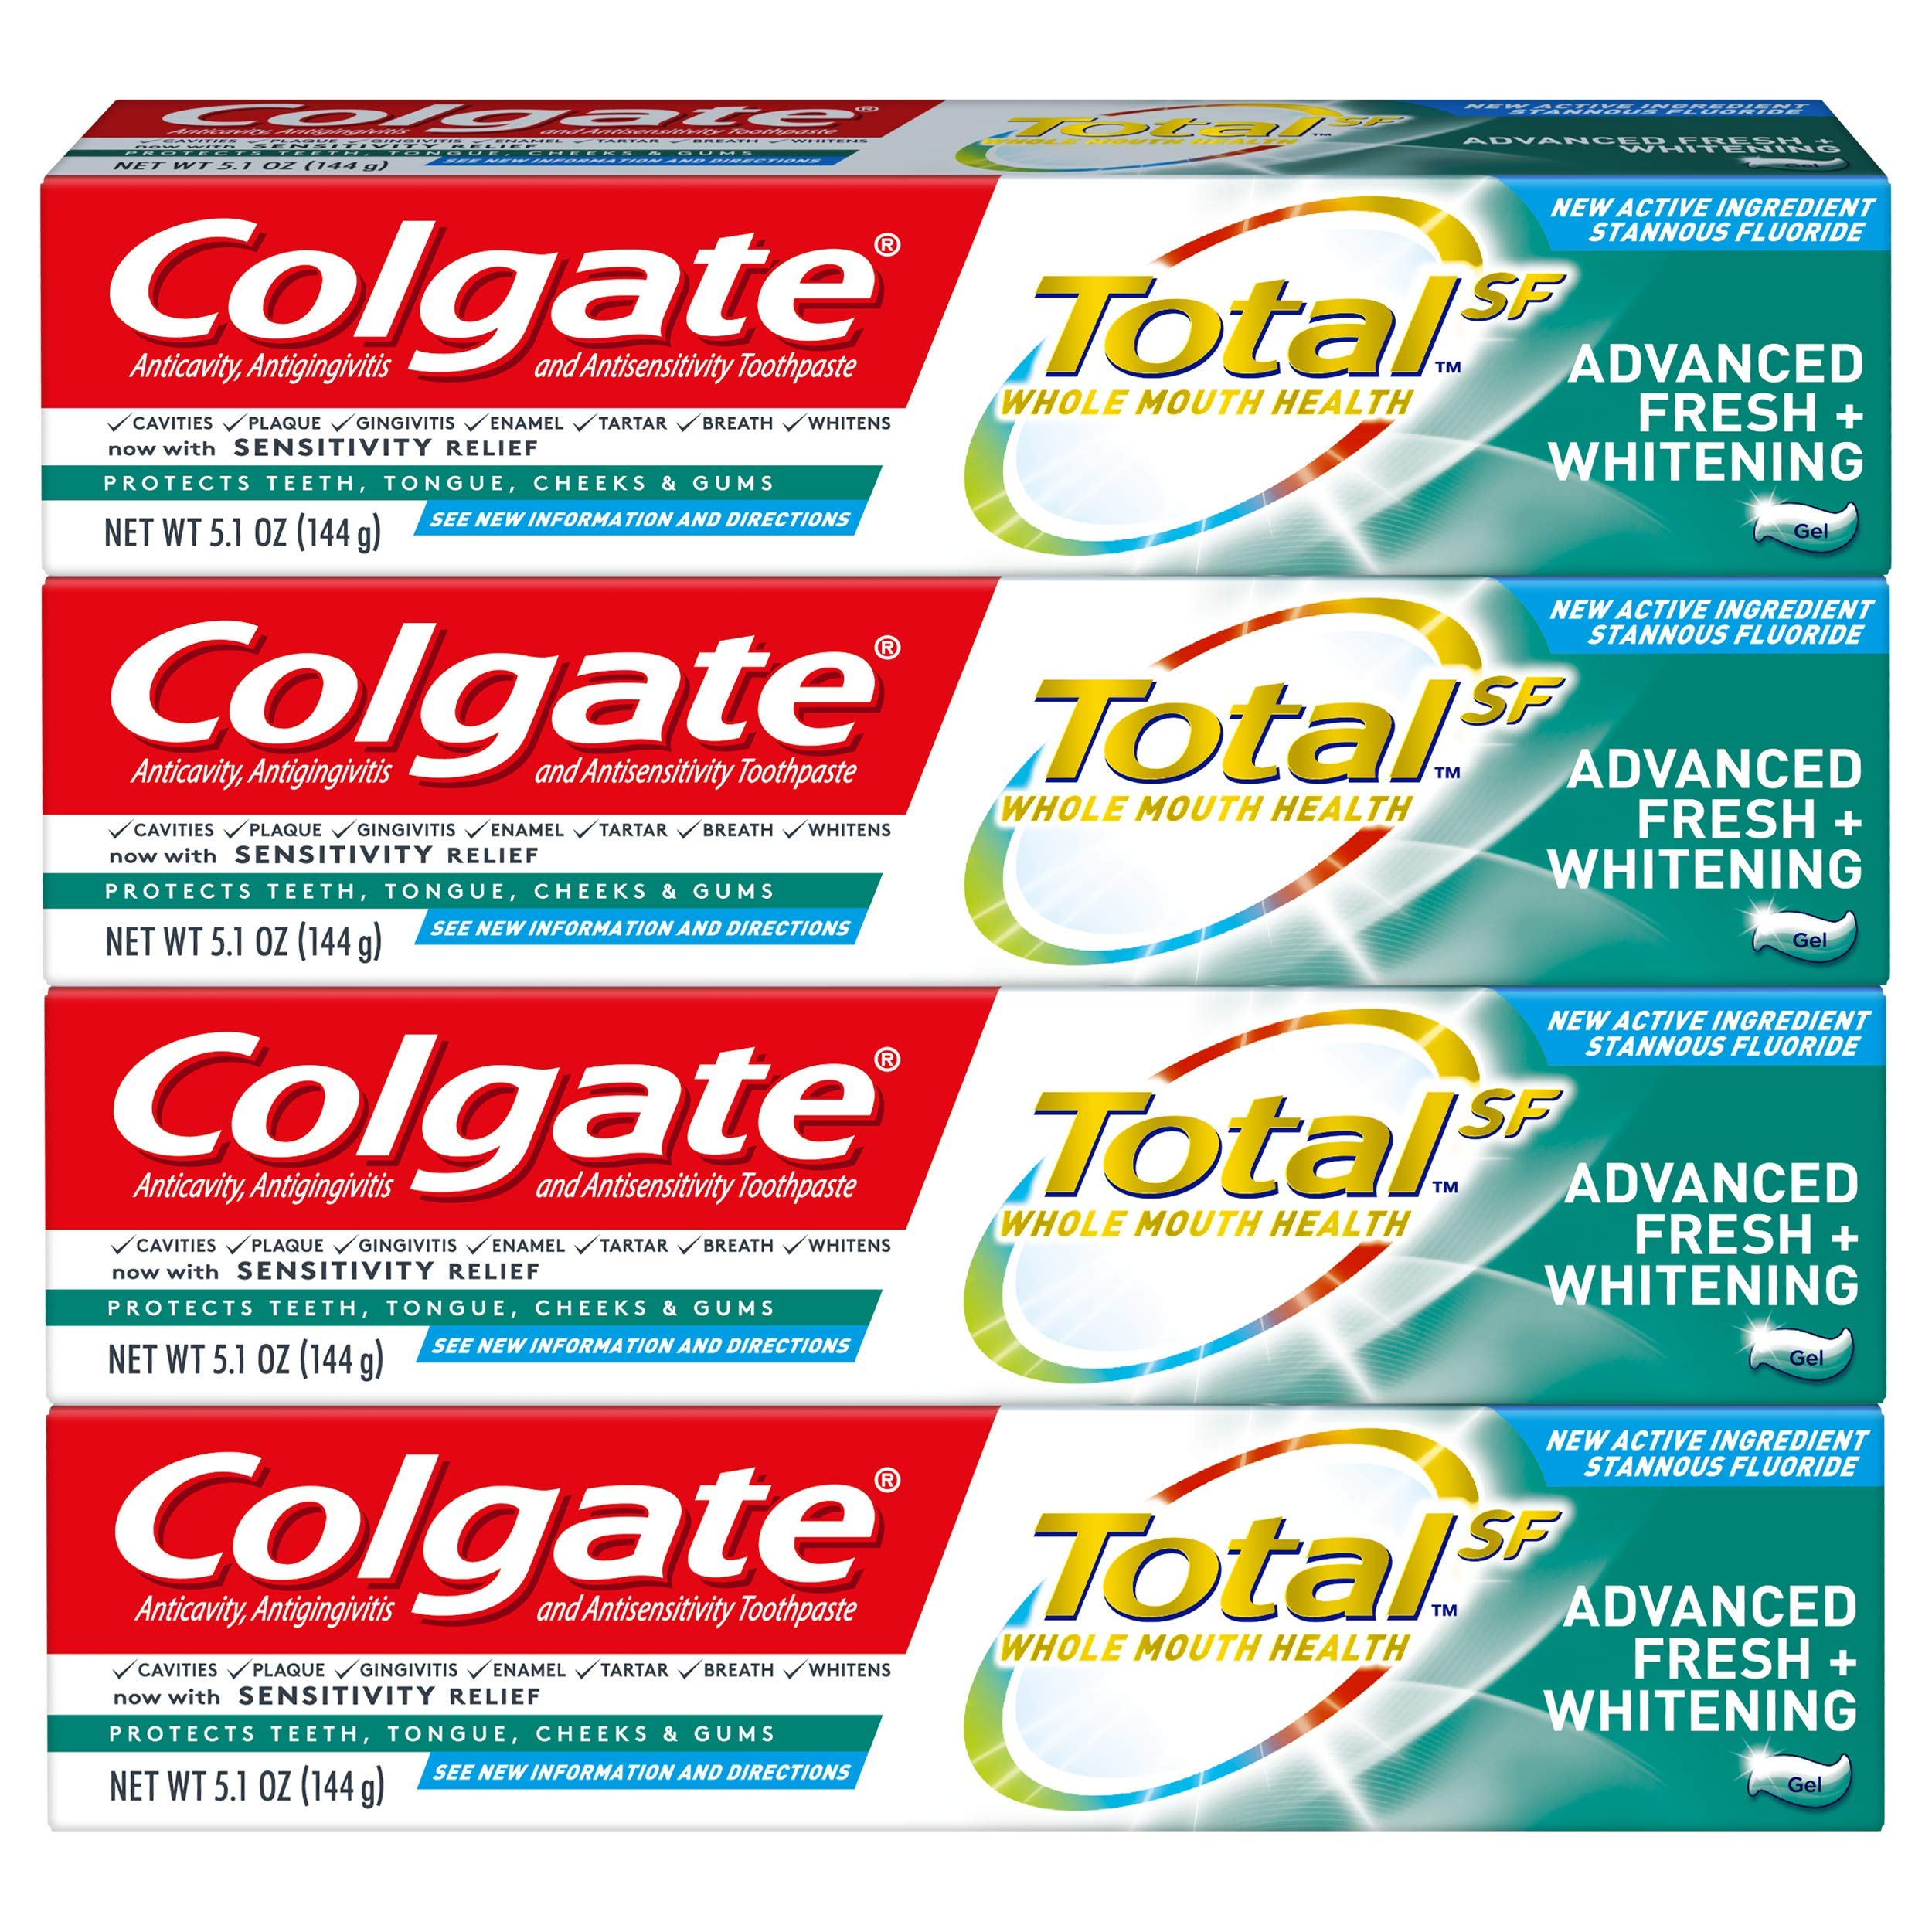 Colgate Total Advanced Fresh + Whitening Gel Toothpaste, 4 Count by Colgate (Image #1)